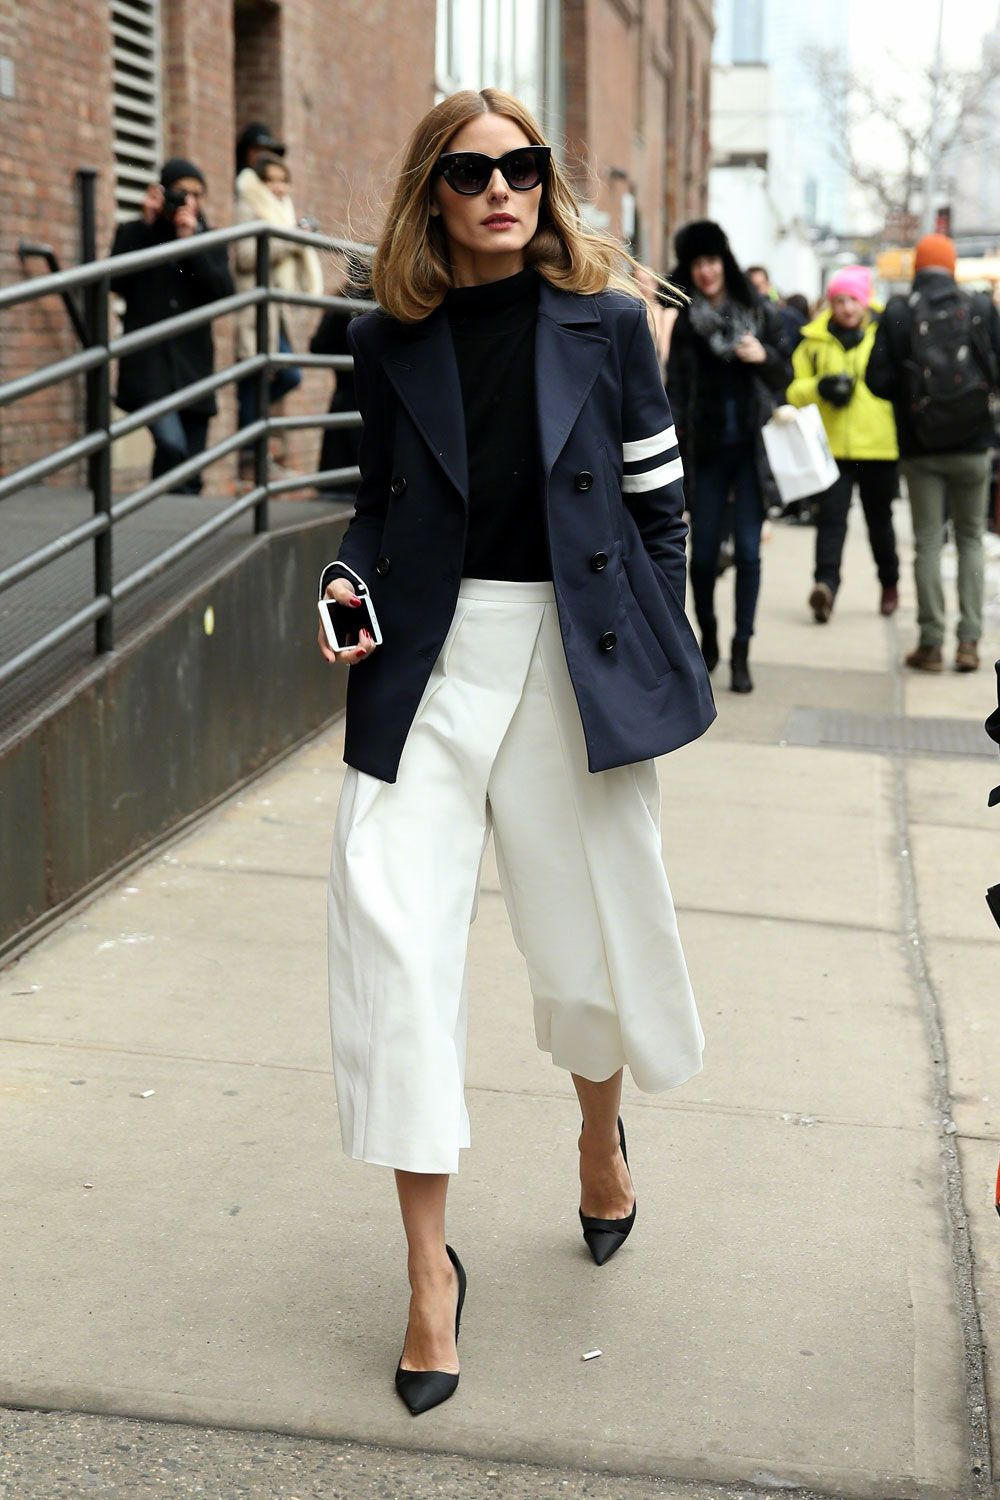 f9c472b14ec7 There s something so effortless yet put-together about throwing on an  oversized blazer. Whether you re wearing it with jeans for the weekend or  pants for ...